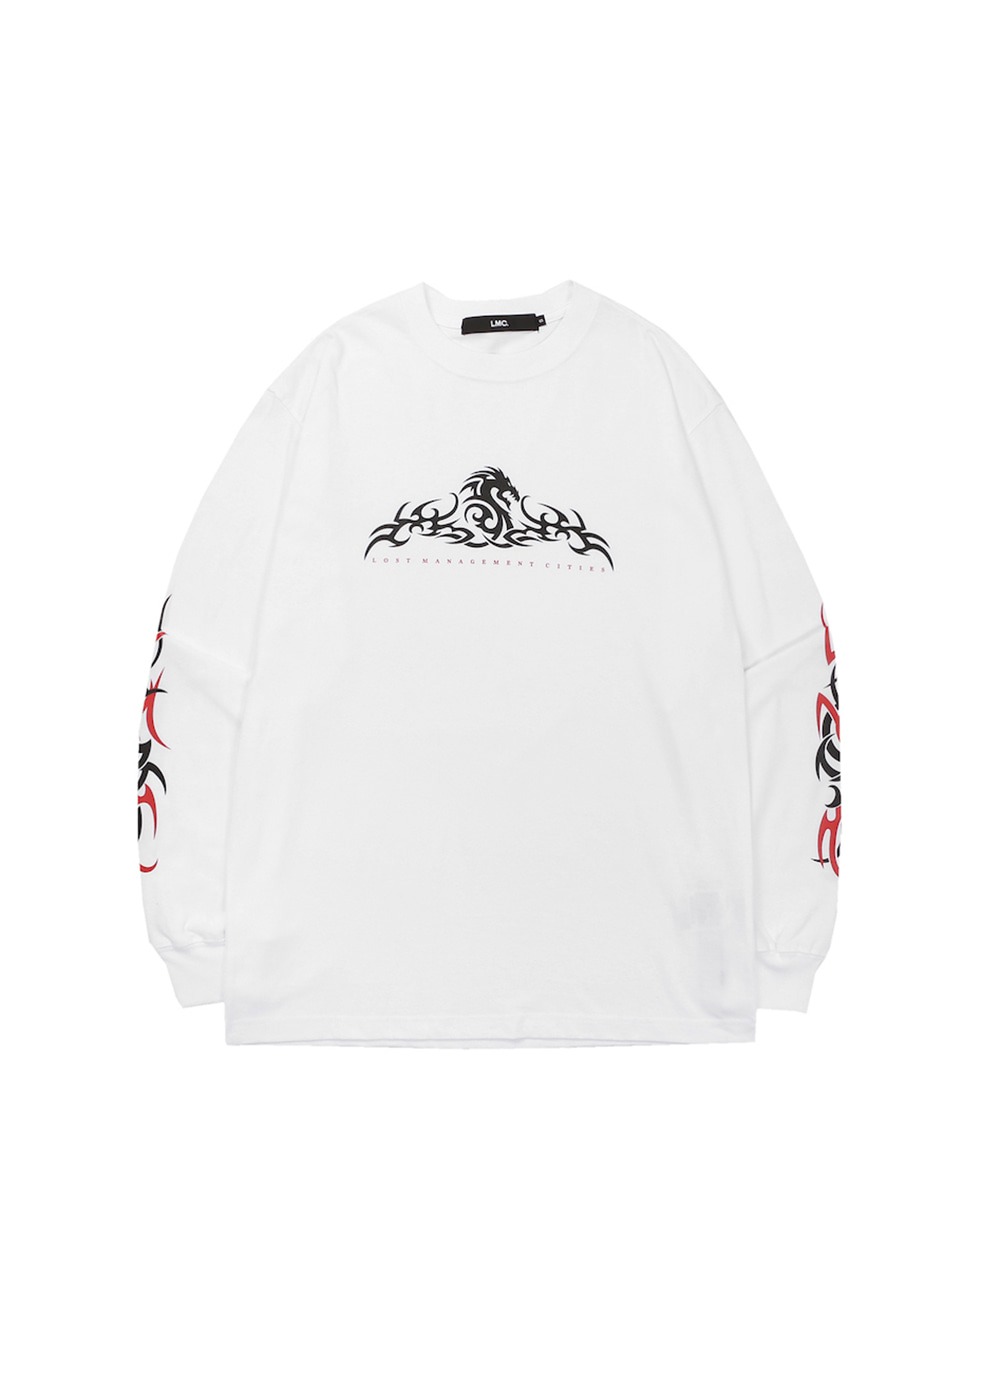 LMC TRIBAL LONG SLV TEE white